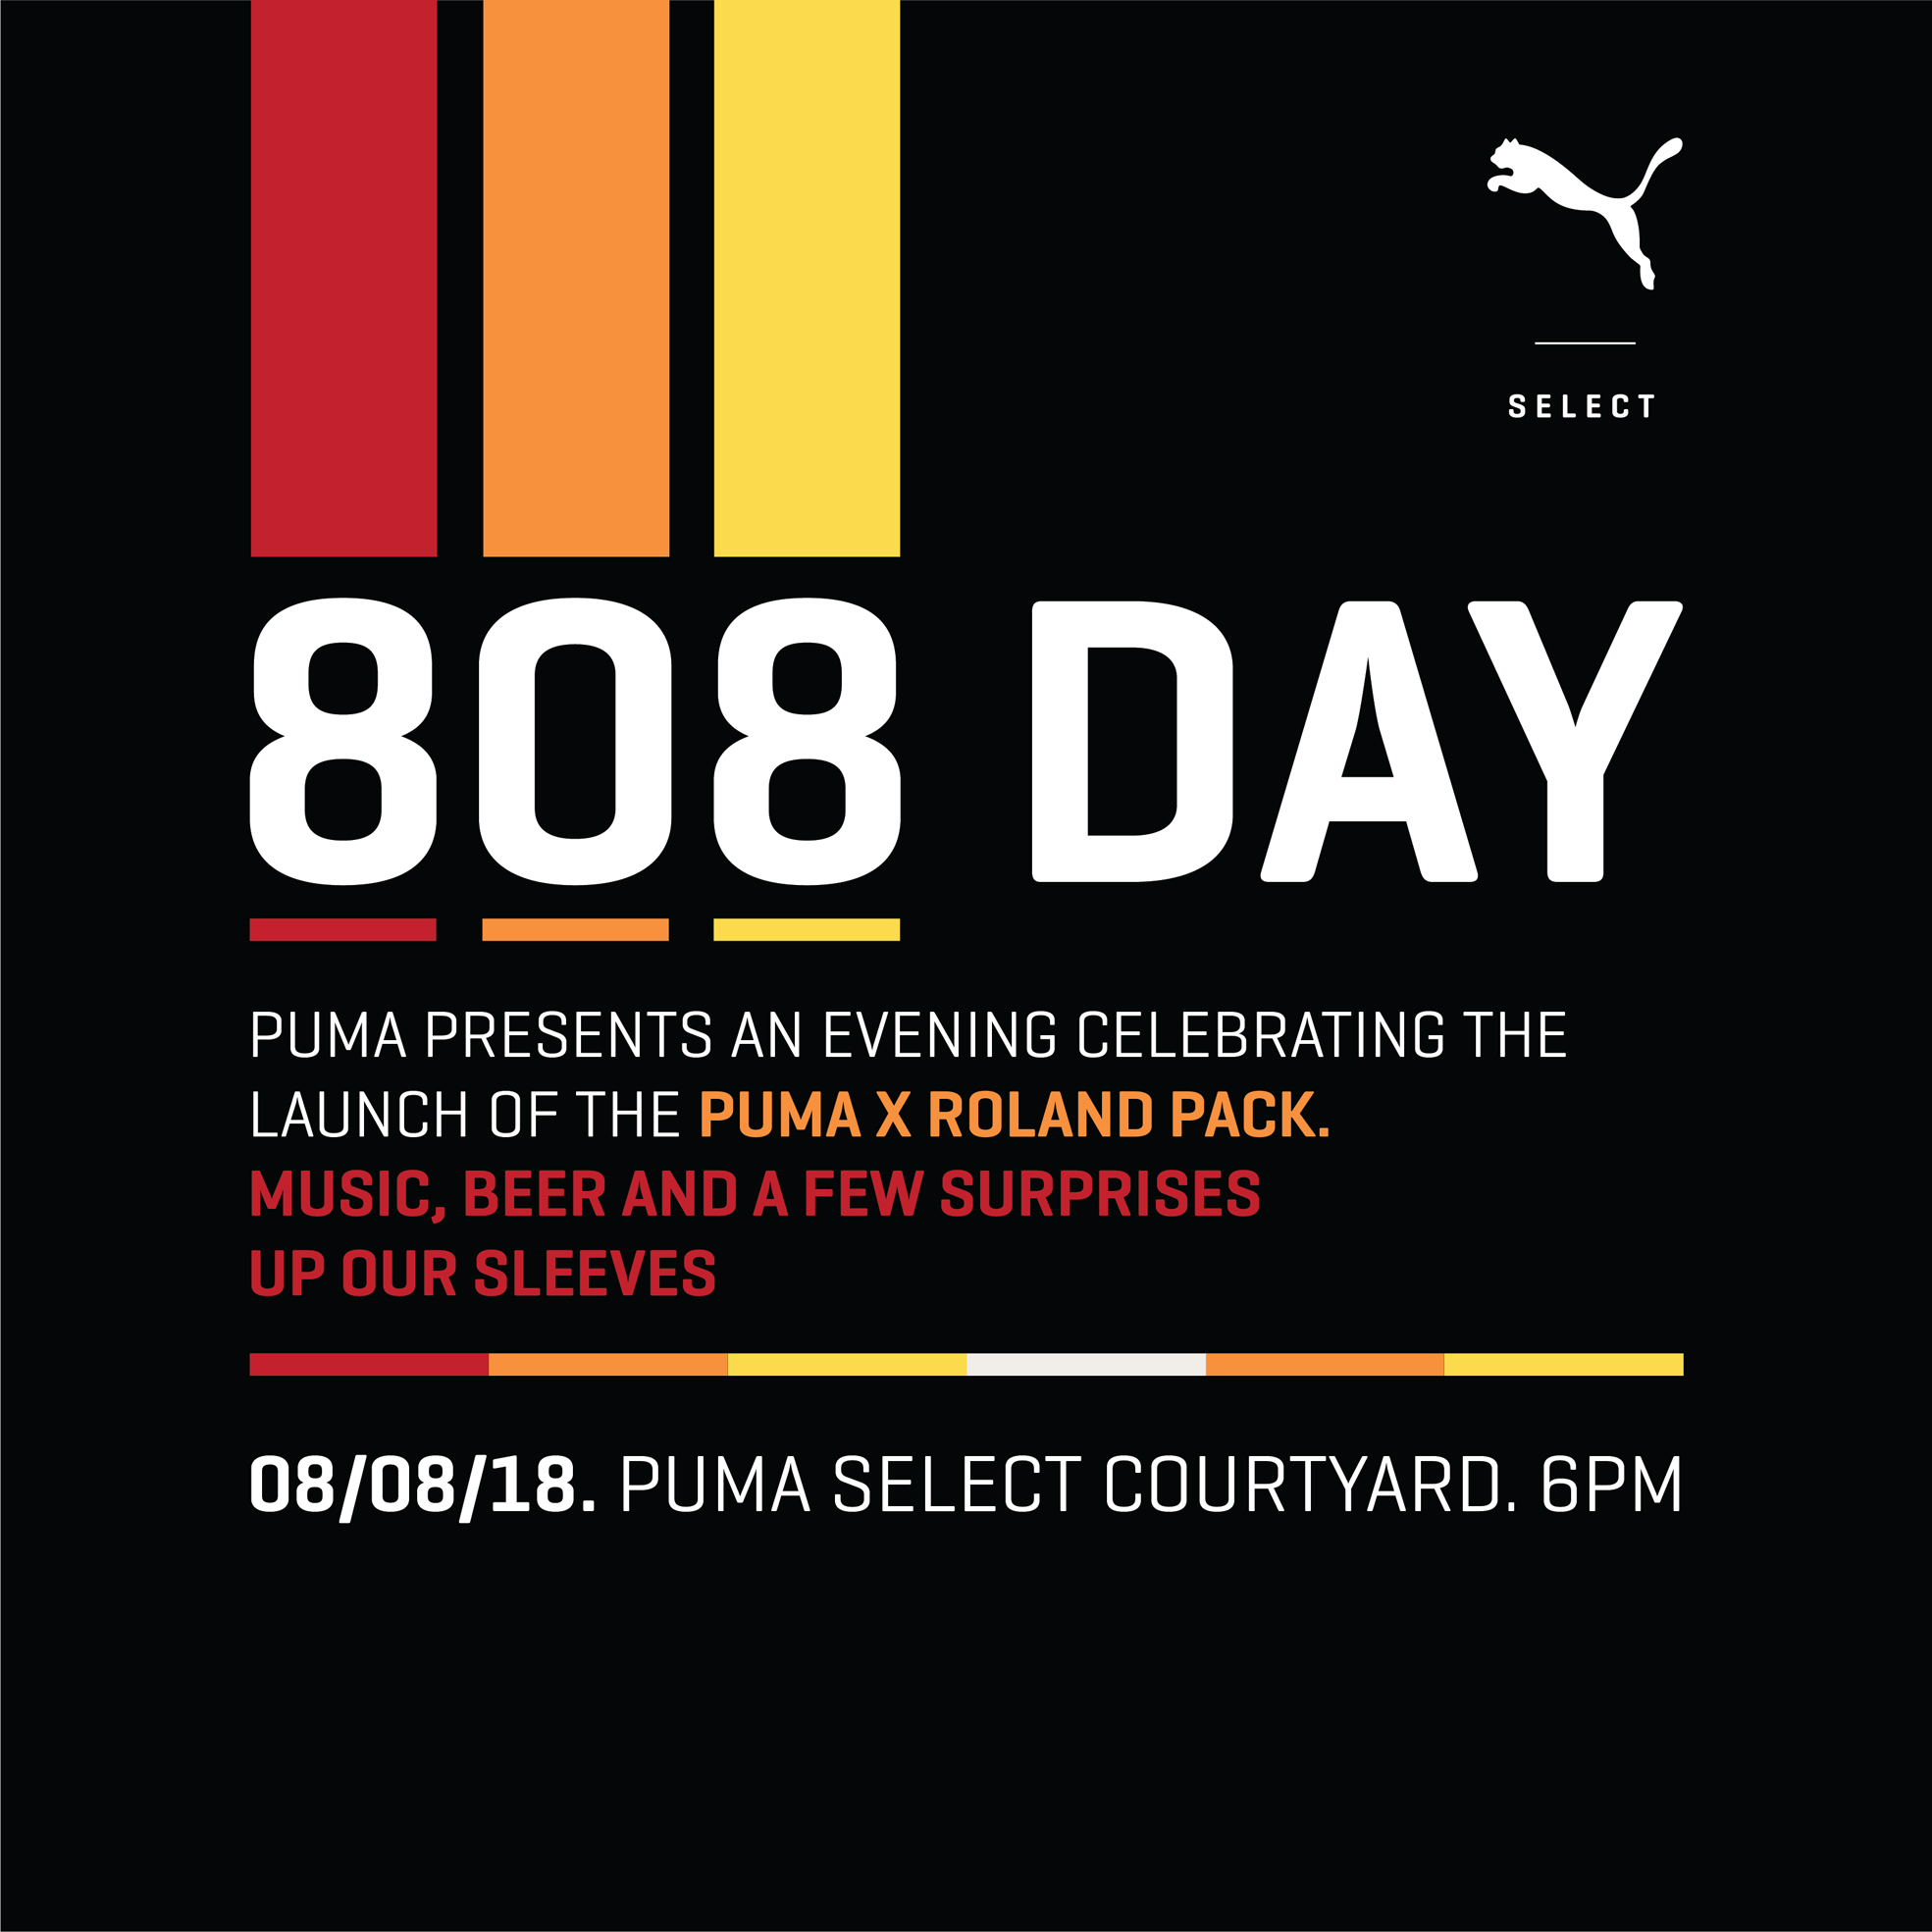 Evening of Music & Good Vibes for 808 Day